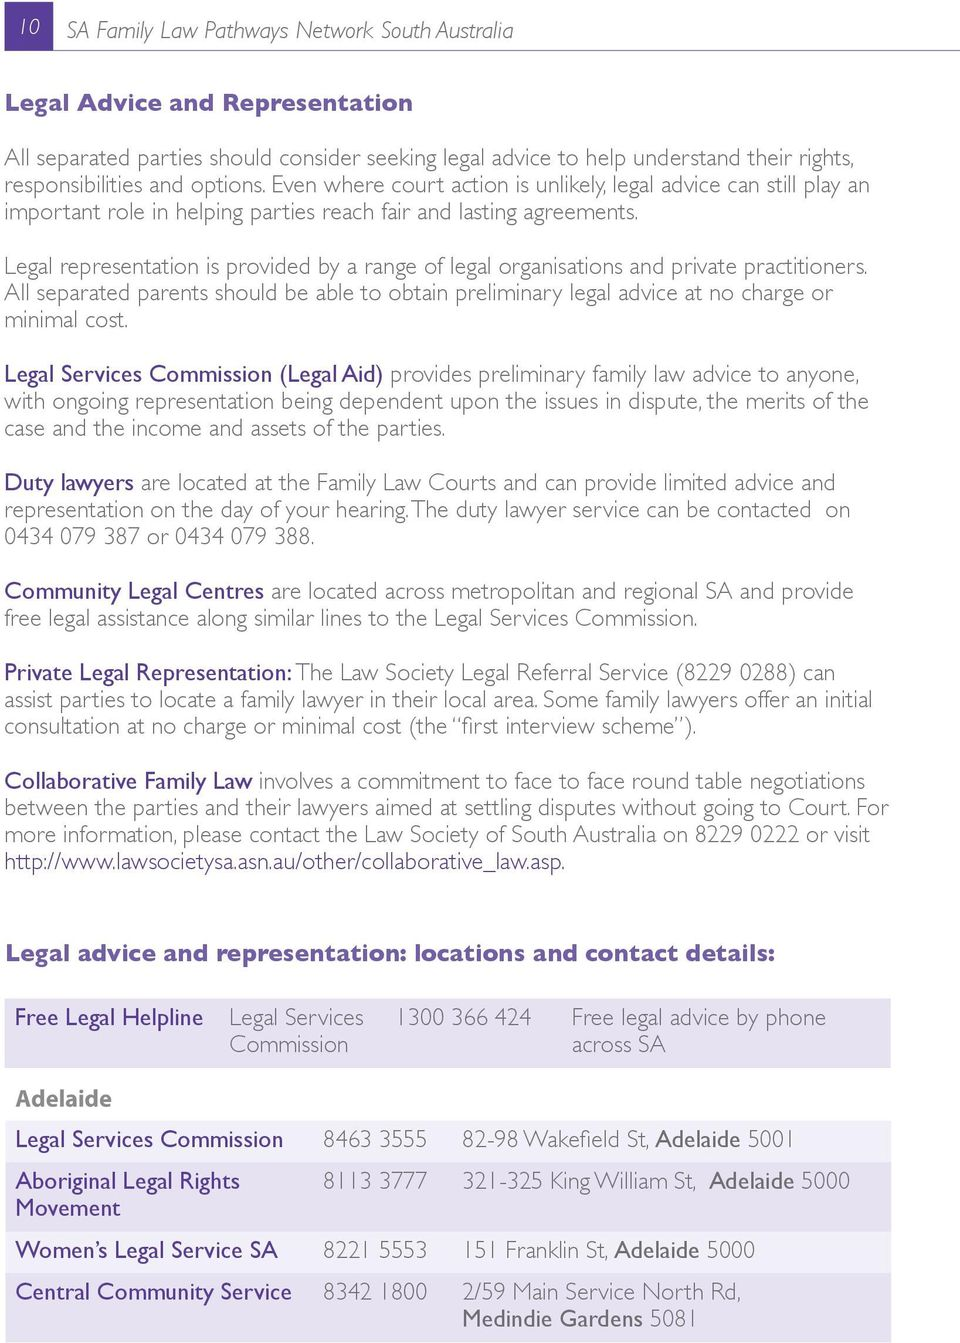 Legal representation is provided by a range of legal organisations and private practitioners. All separated parents should be able to obtain preliminary legal advice at no charge or minimal cost.